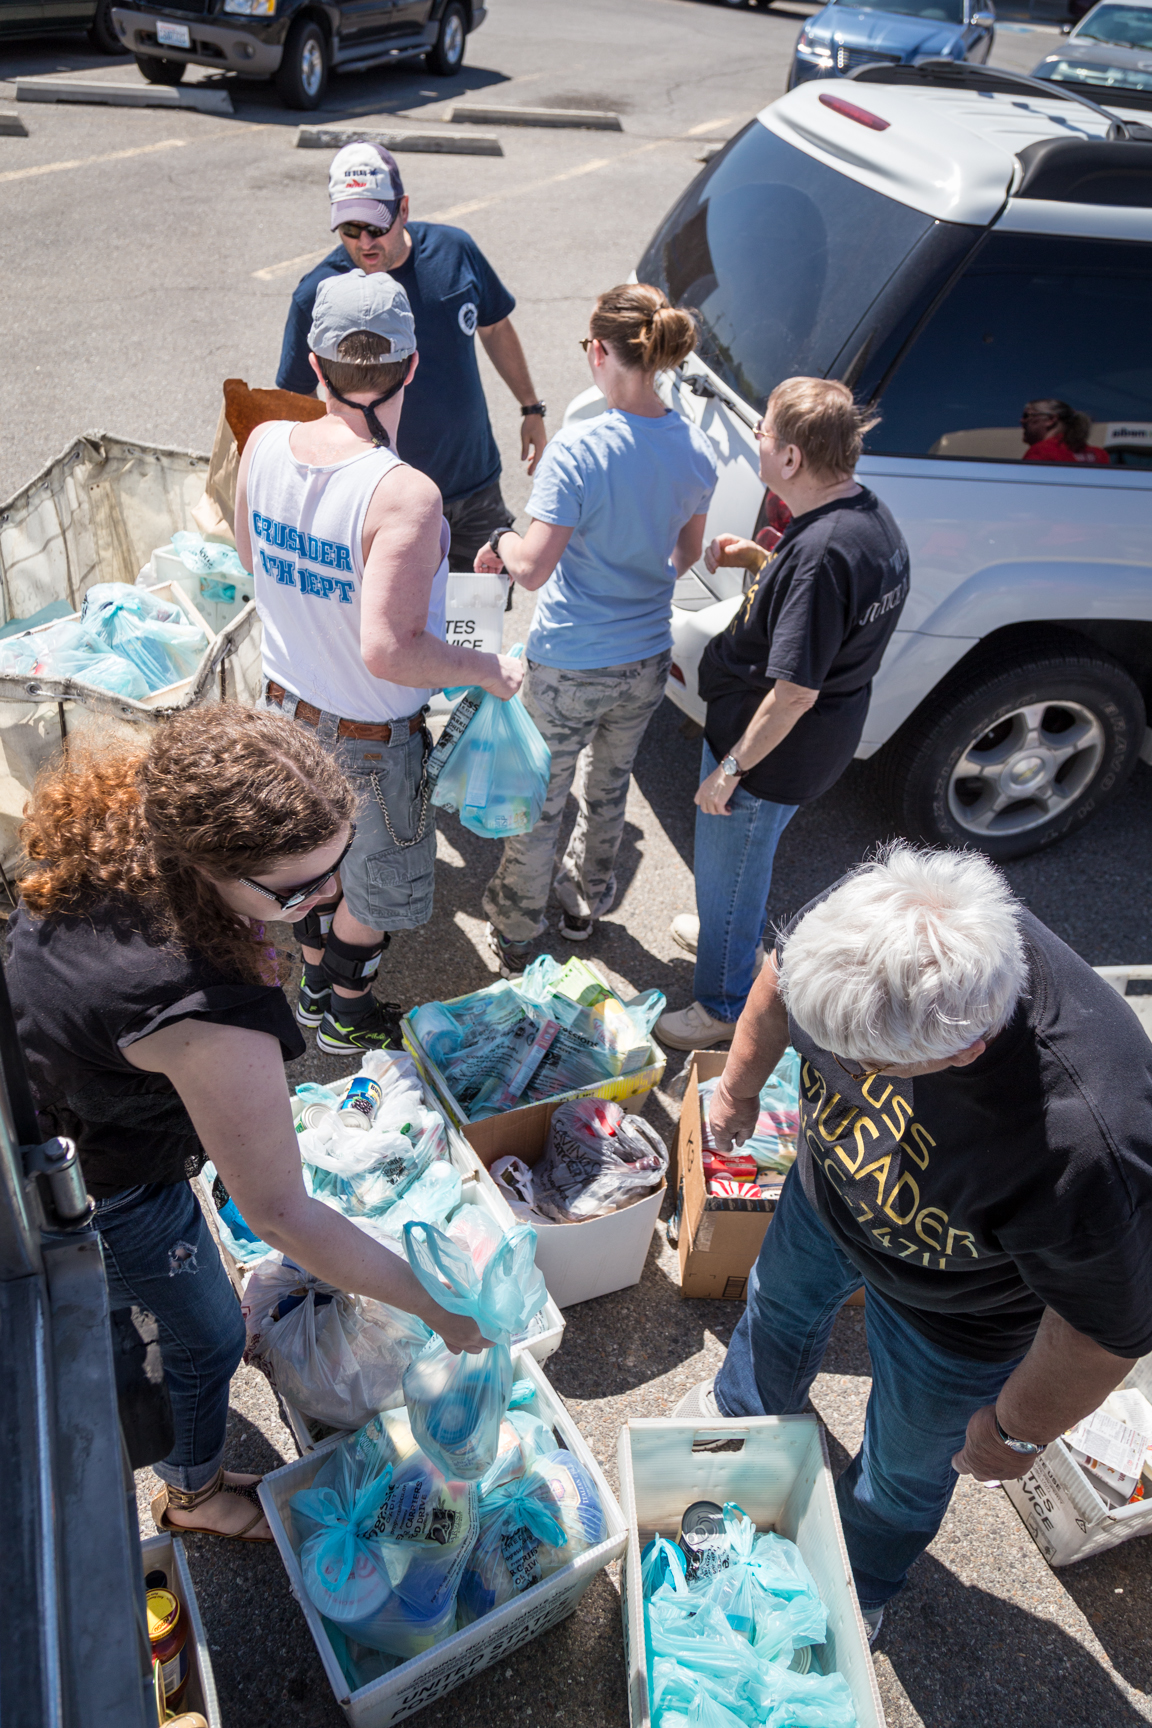 A little bit about us... - Fun, fandom, and community service. It's what we do.Commissioned in 1997, the U.S.S. Crusader is a Star Trek fan club based out of Spokane, Wash. Our chapter is a part of Starfleet International, the international Star Trek fan association. We love our home here in Eastern Washington, where we can connect with like-minded fans and enjoy all that our region has to offer.Learn More